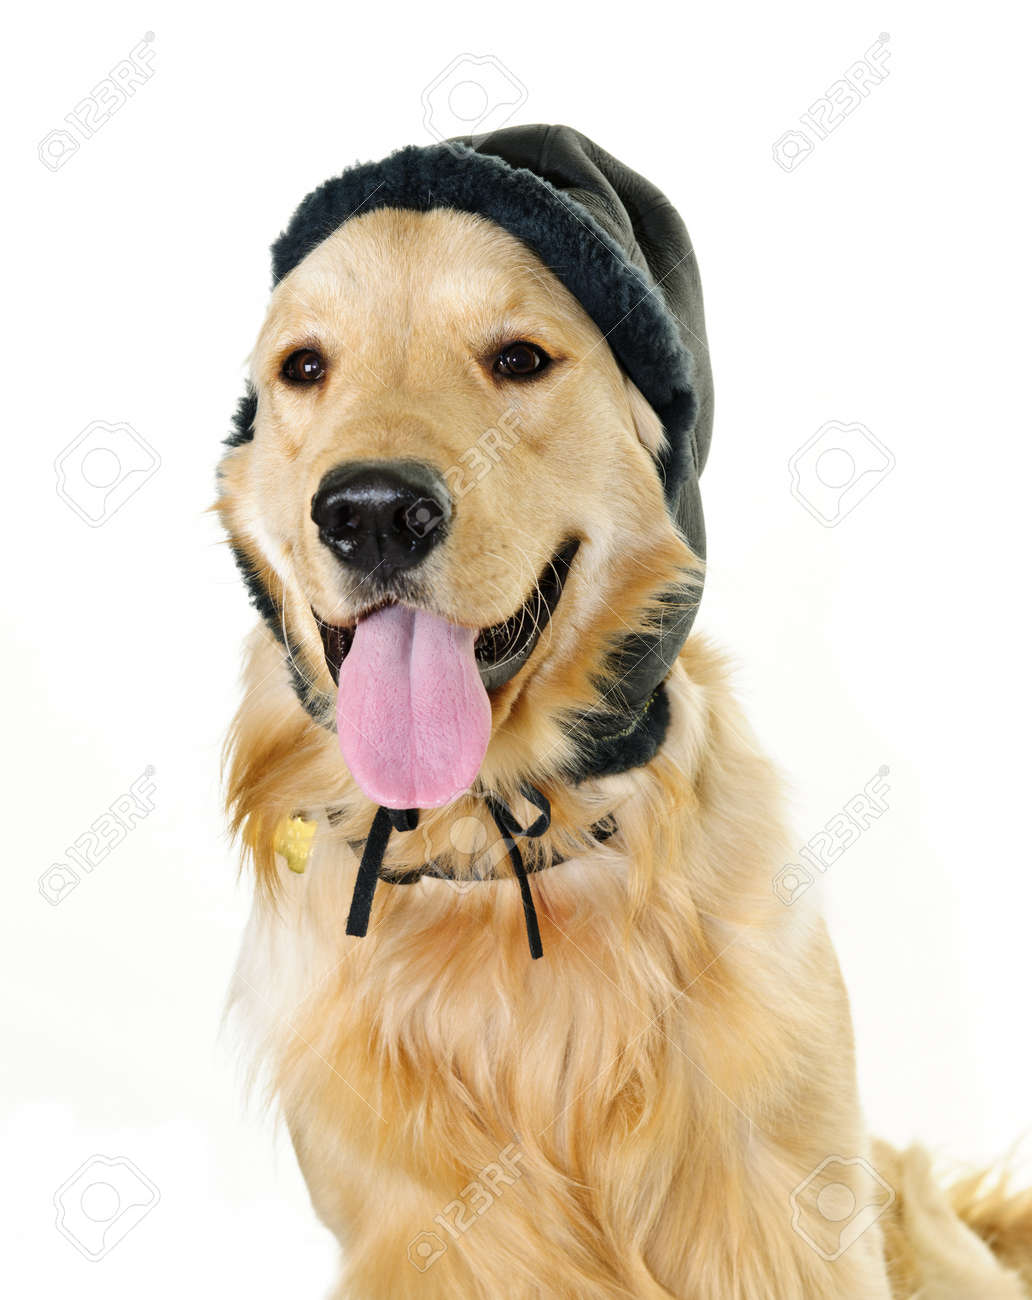 Funny golden retriever dog wearing winter hat  isolated on white background Stock Photo - 9304051